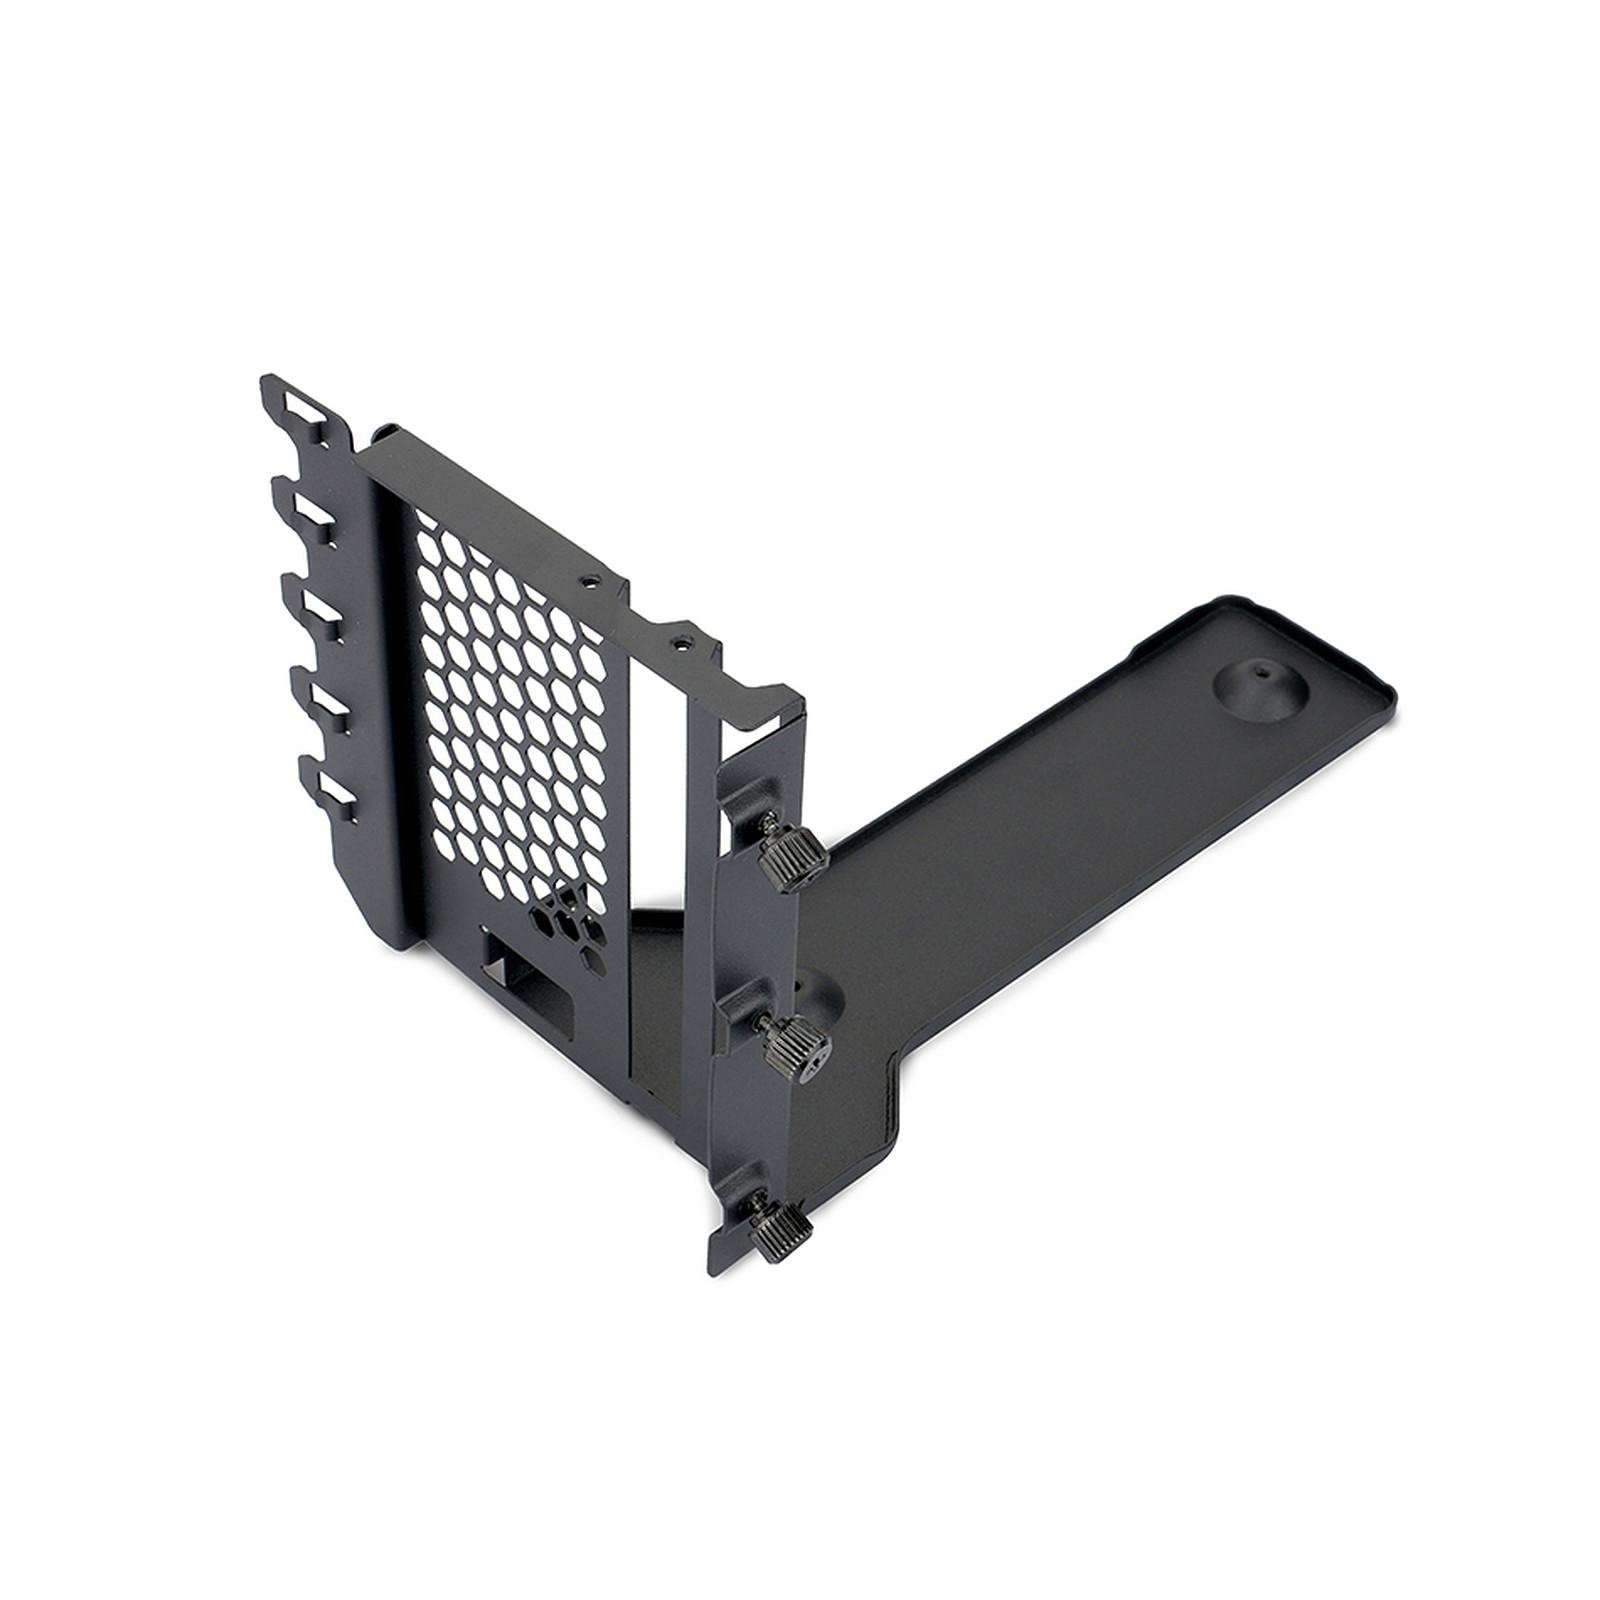 Vertical Gpu Bracket Interne Connectique Sur Phanteks wN0nOvm8